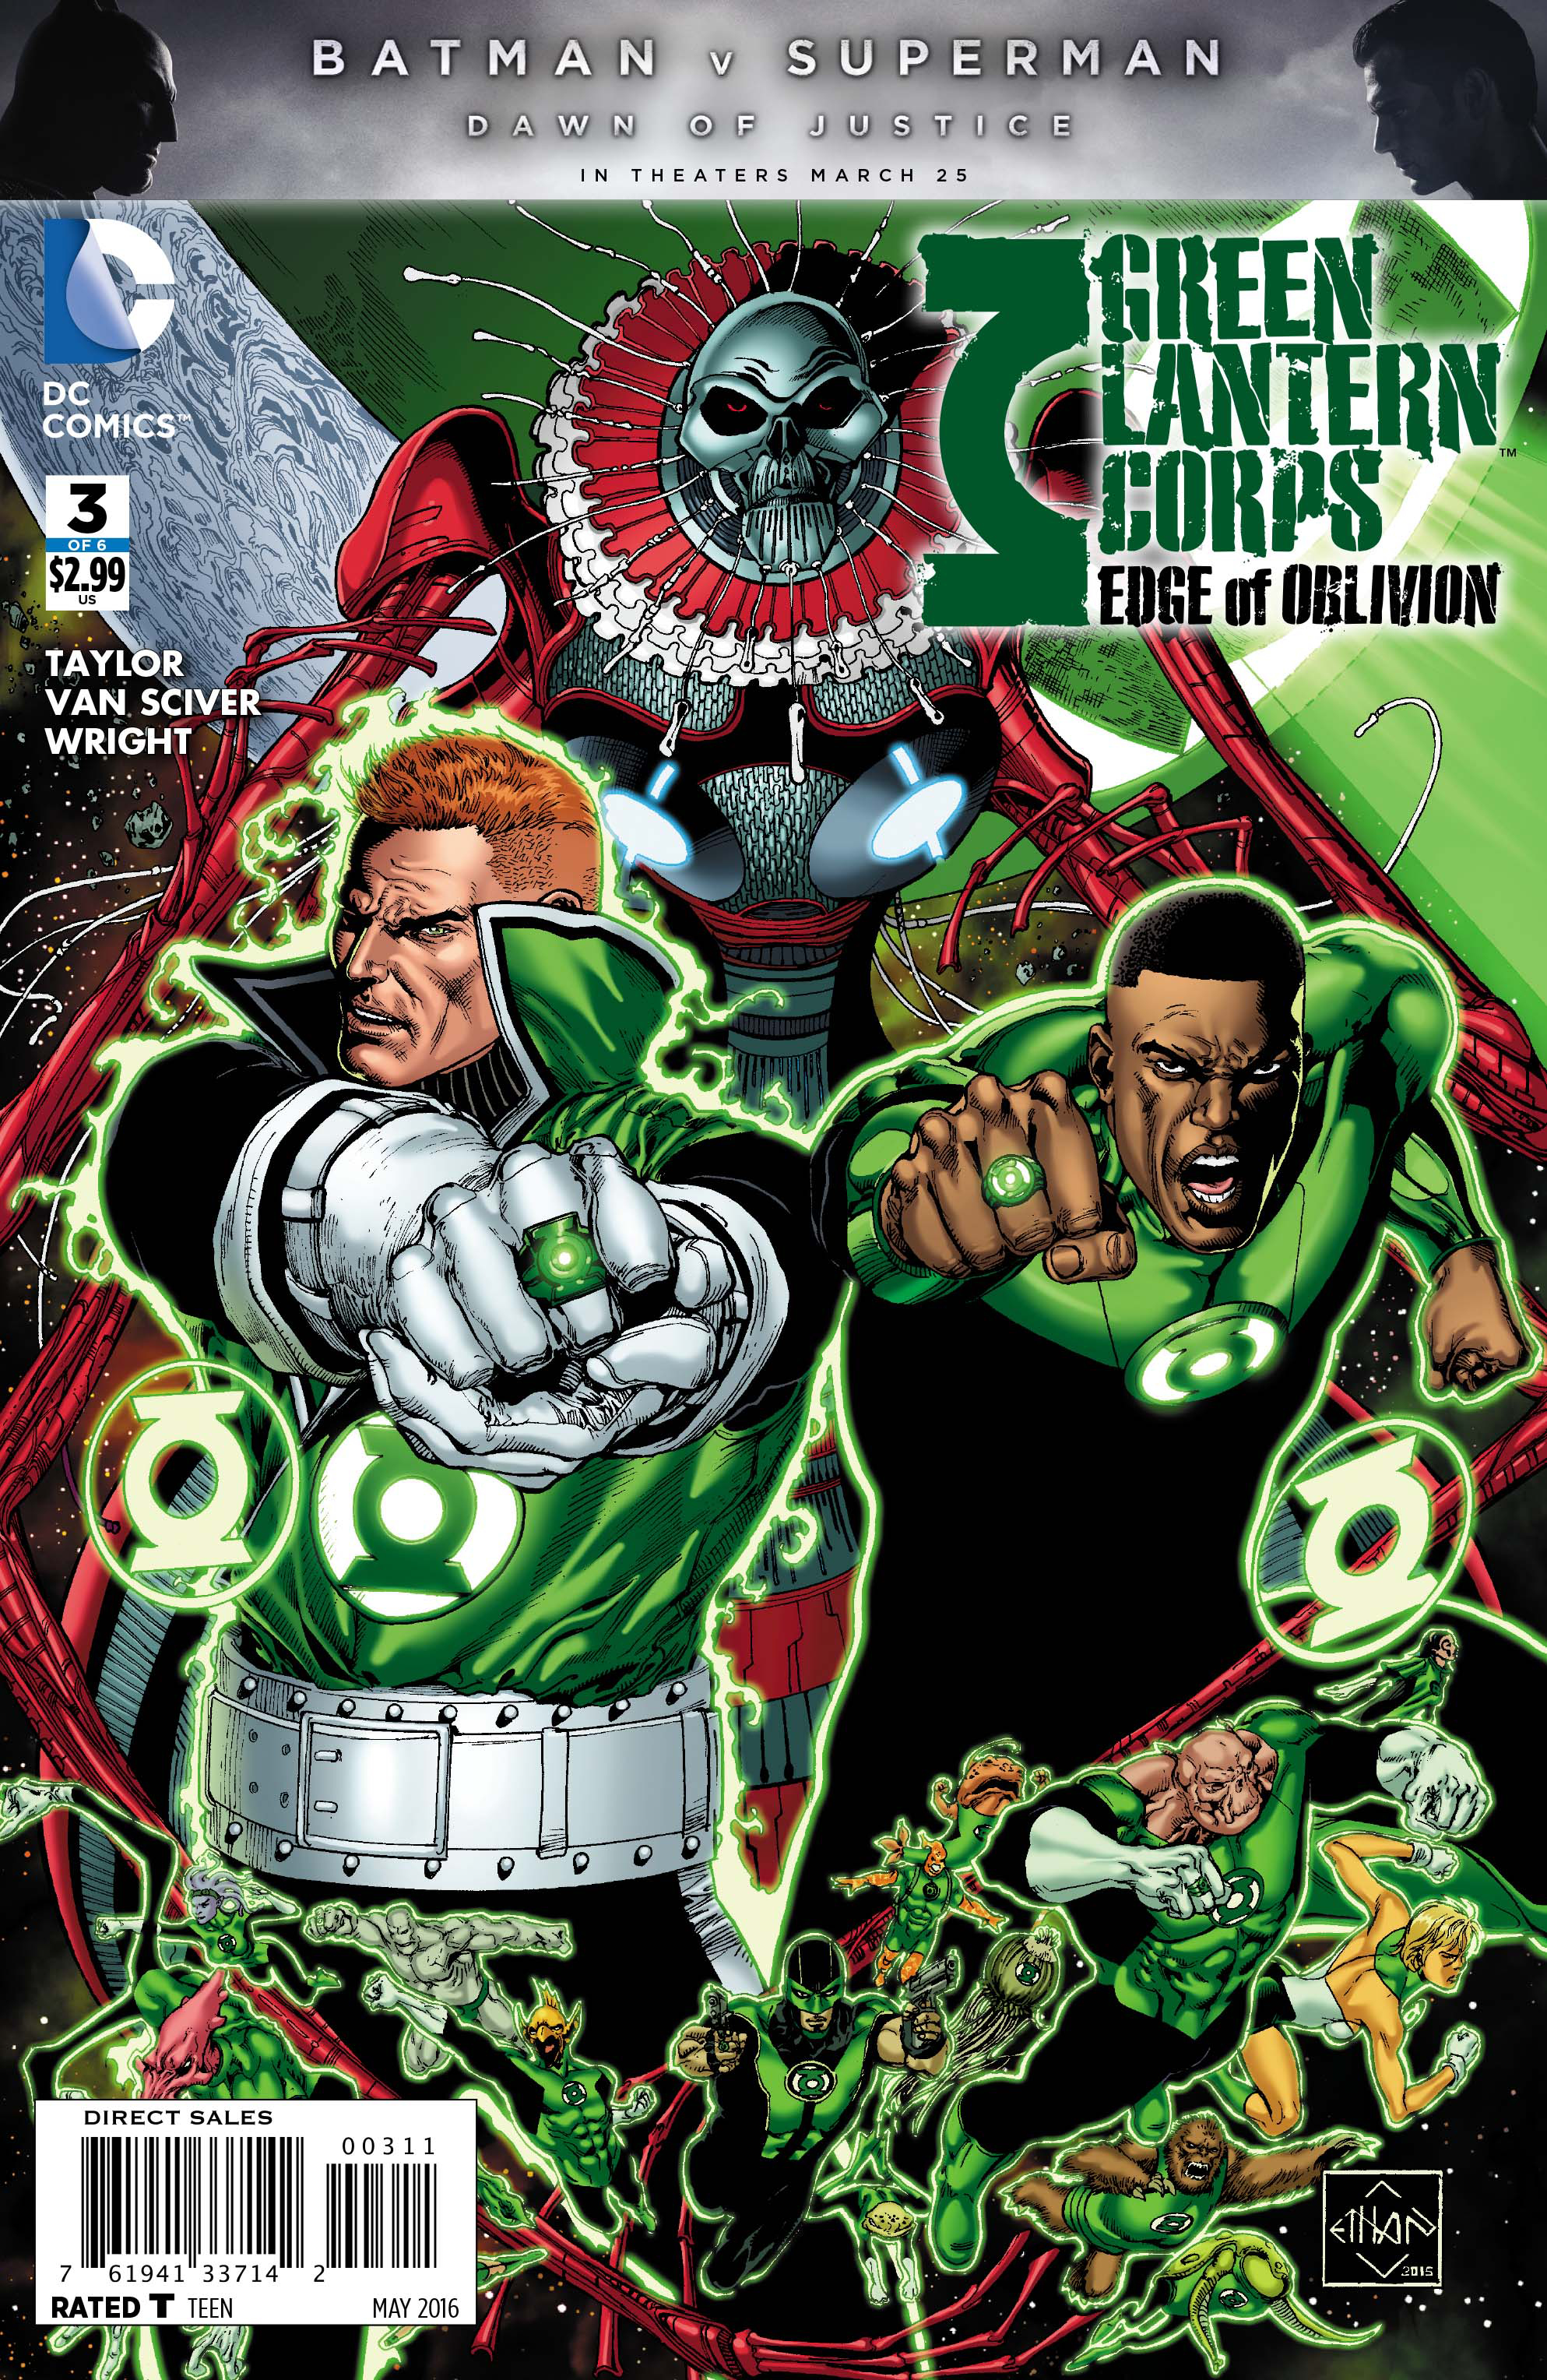 GREEN LANTERN CORPS EDGE OF OBLIVION #3